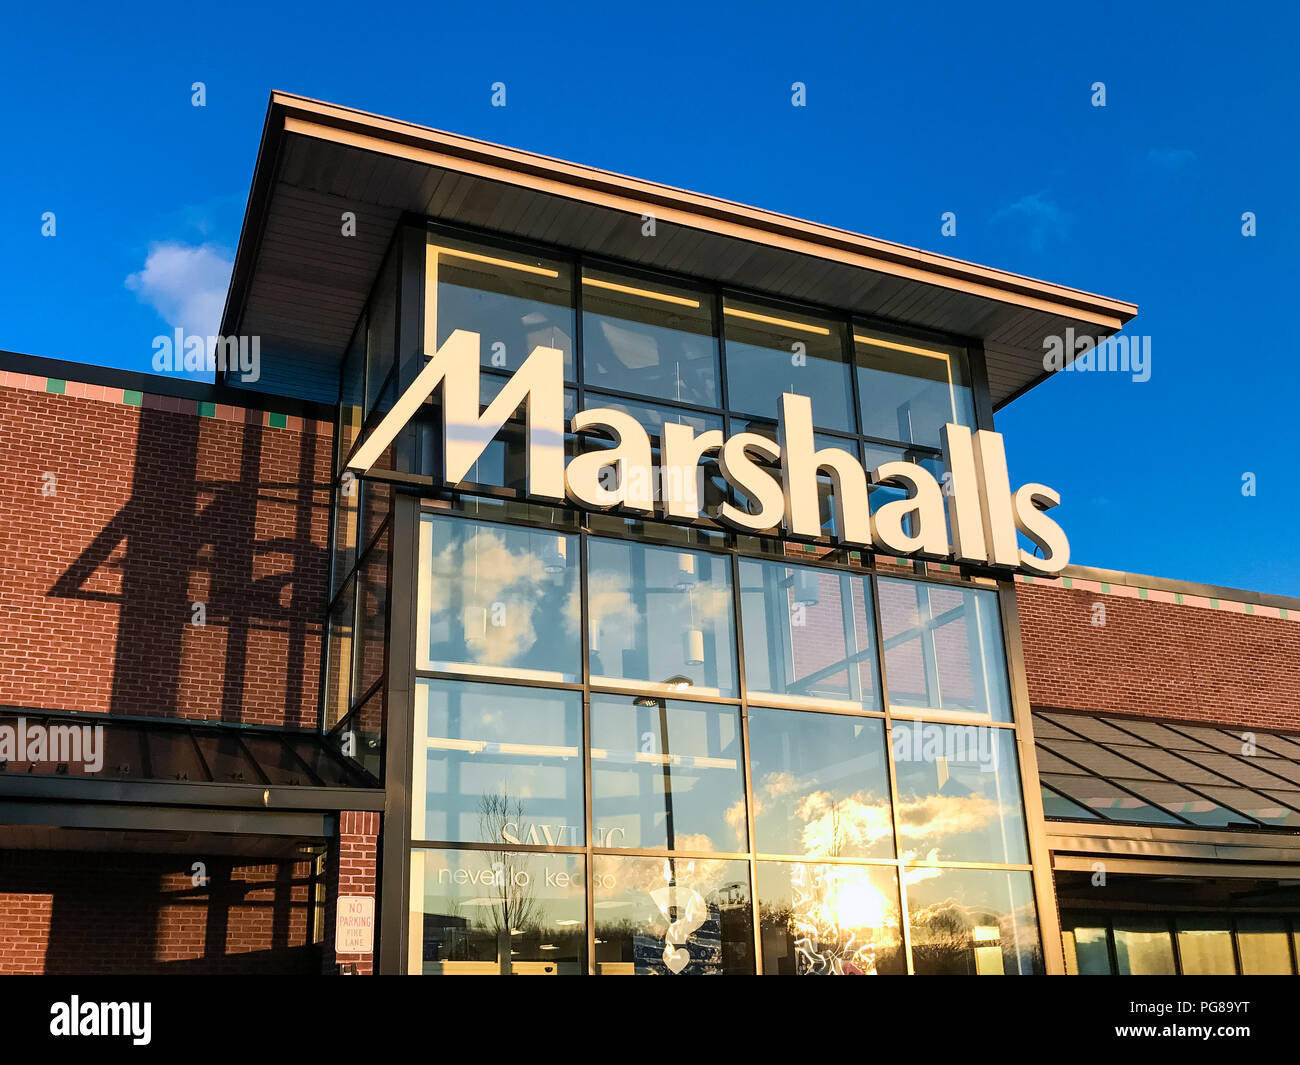 Marshalls discount clothing store. - Stock Image